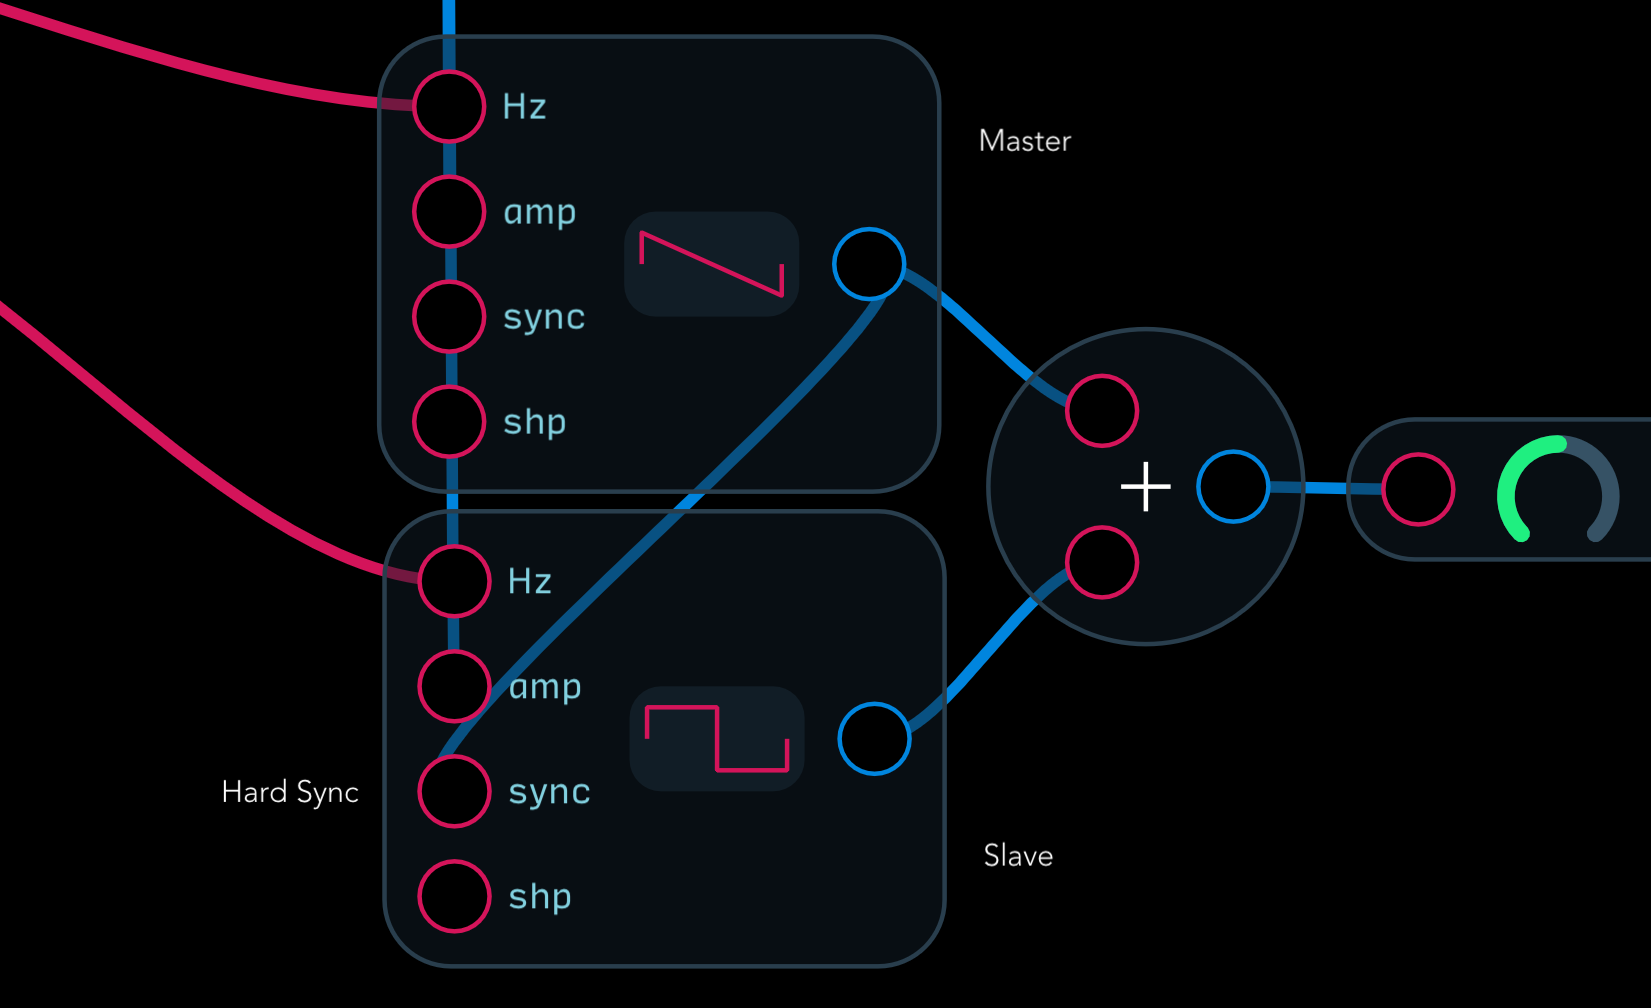 Nodes Reference Audulus Audio Amplifier Circuitresize By Dragging With The Right Mouse Button Osc Hard Sync